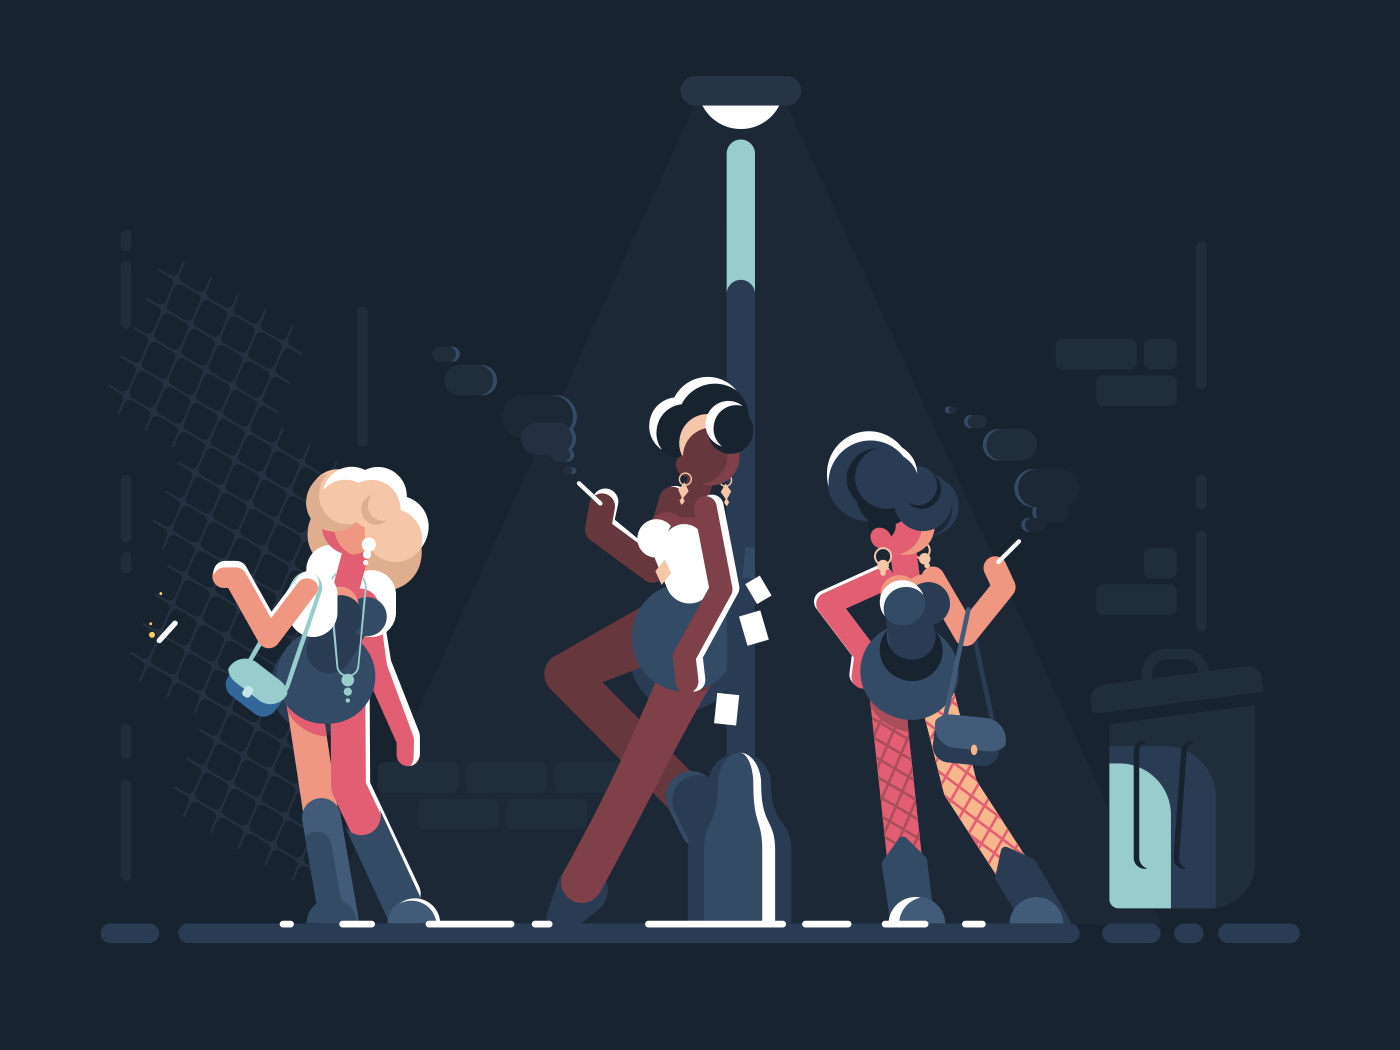 Prostitutes at work. Group of girls standing on street at night. Vector illustration